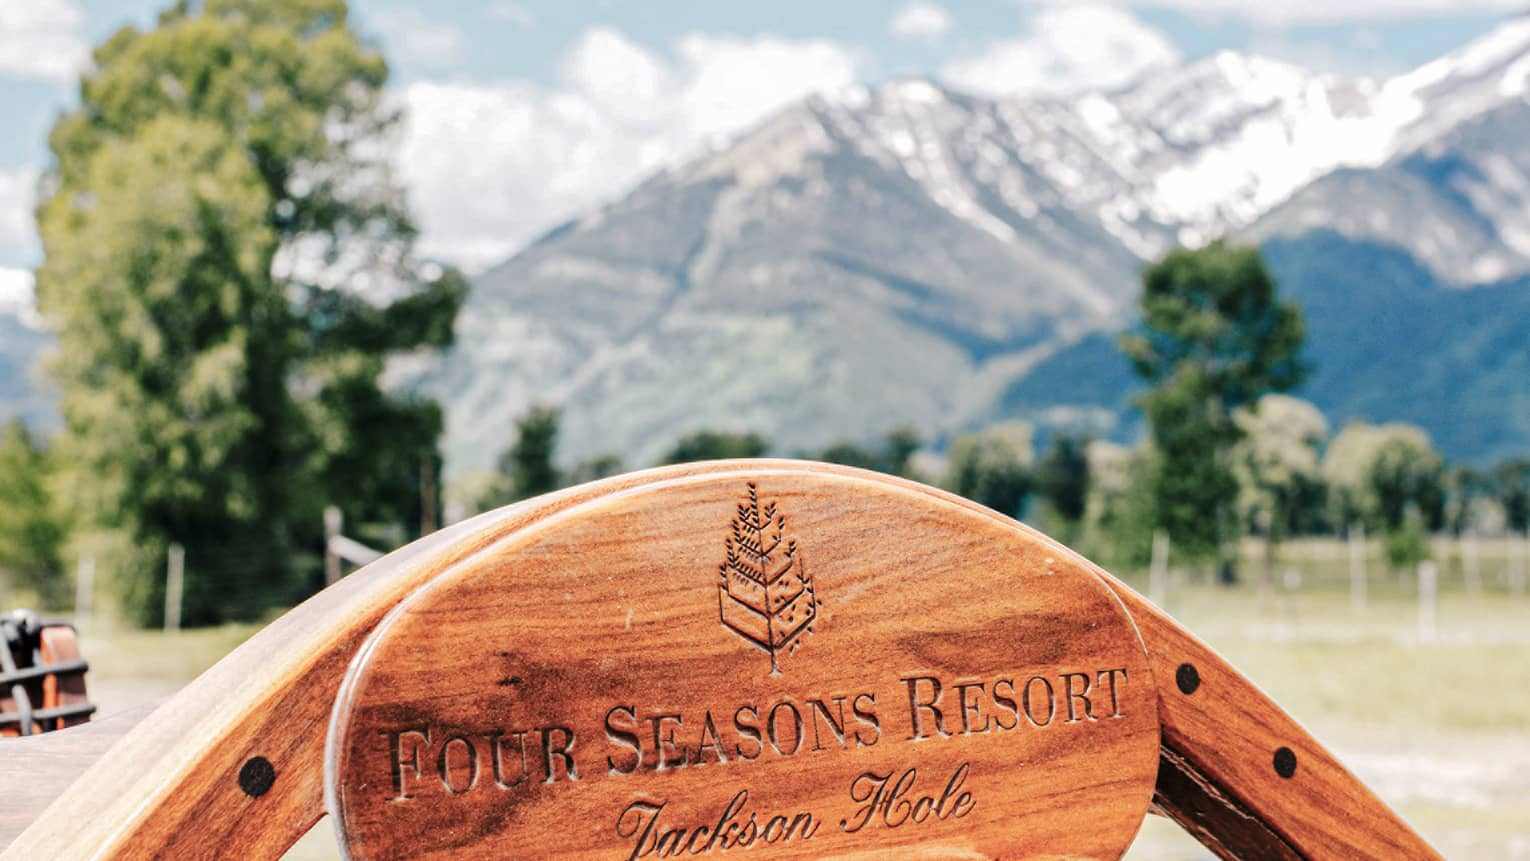 Close-up of the Four Seasons Jackson Hole logo engraved on a wooden plaque near the helm of a boat